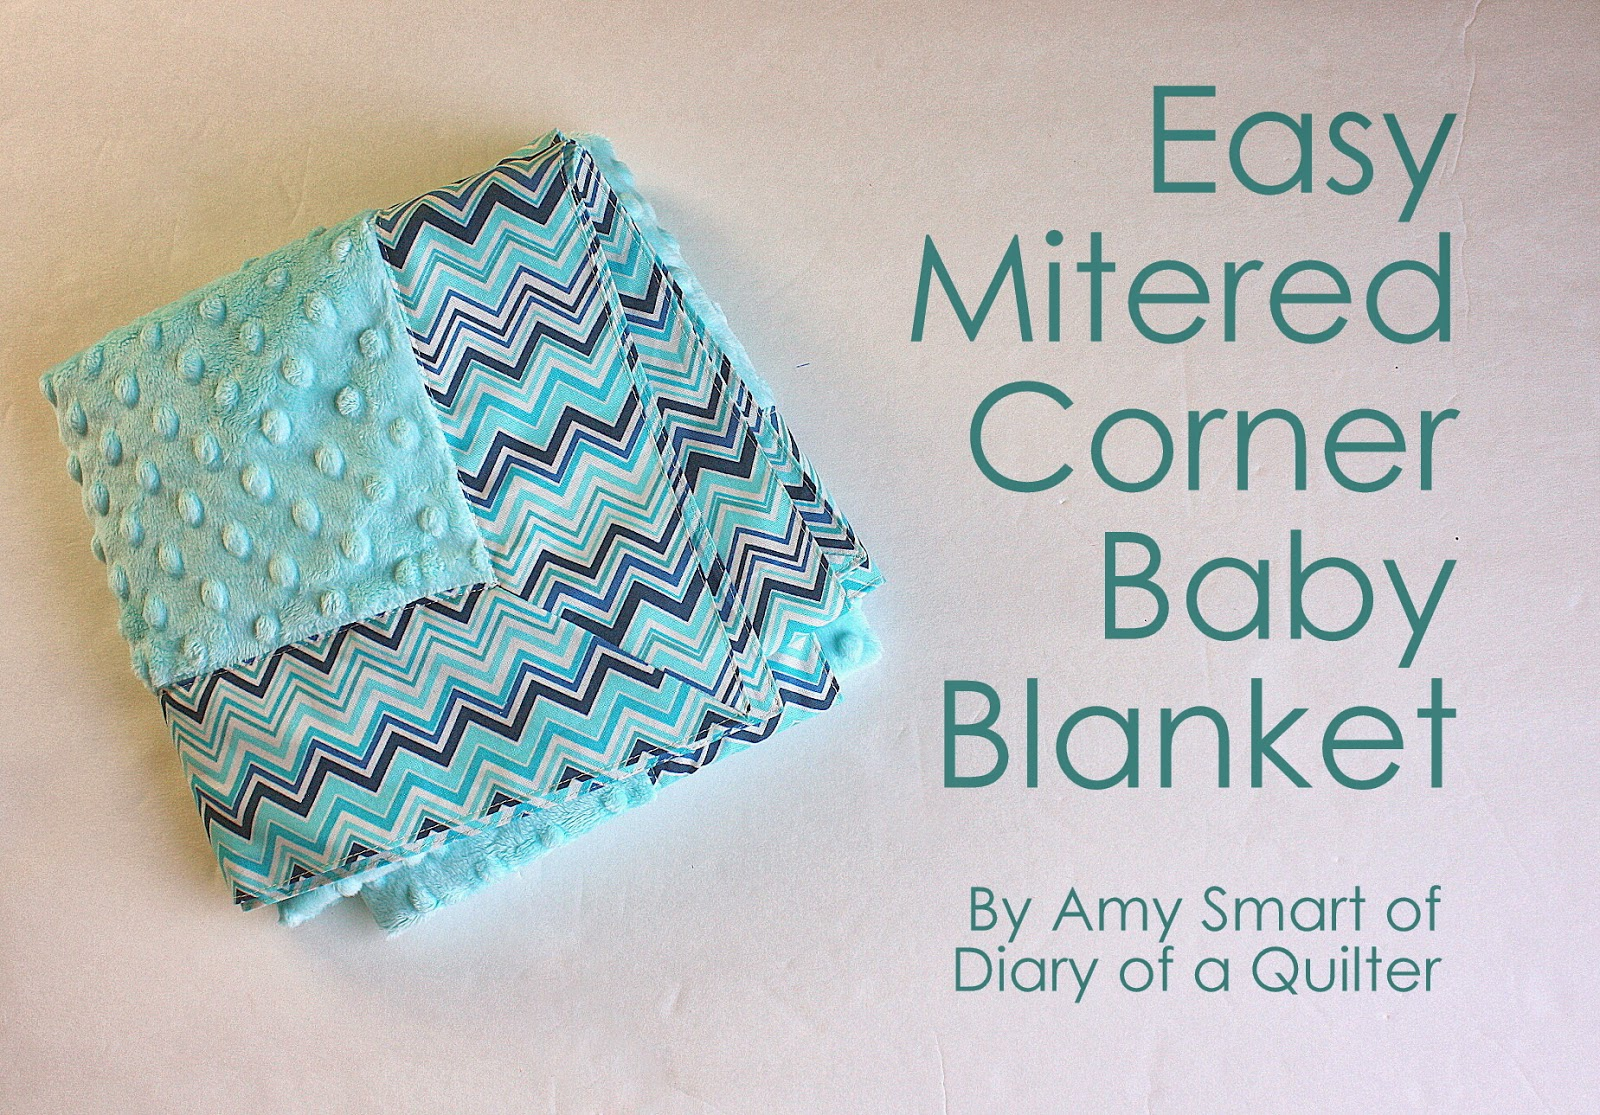 Baby Blanket tutorial with Cuddle Fabric - Diary of a Quilter - a ... : fabric for baby quilts - Adamdwight.com